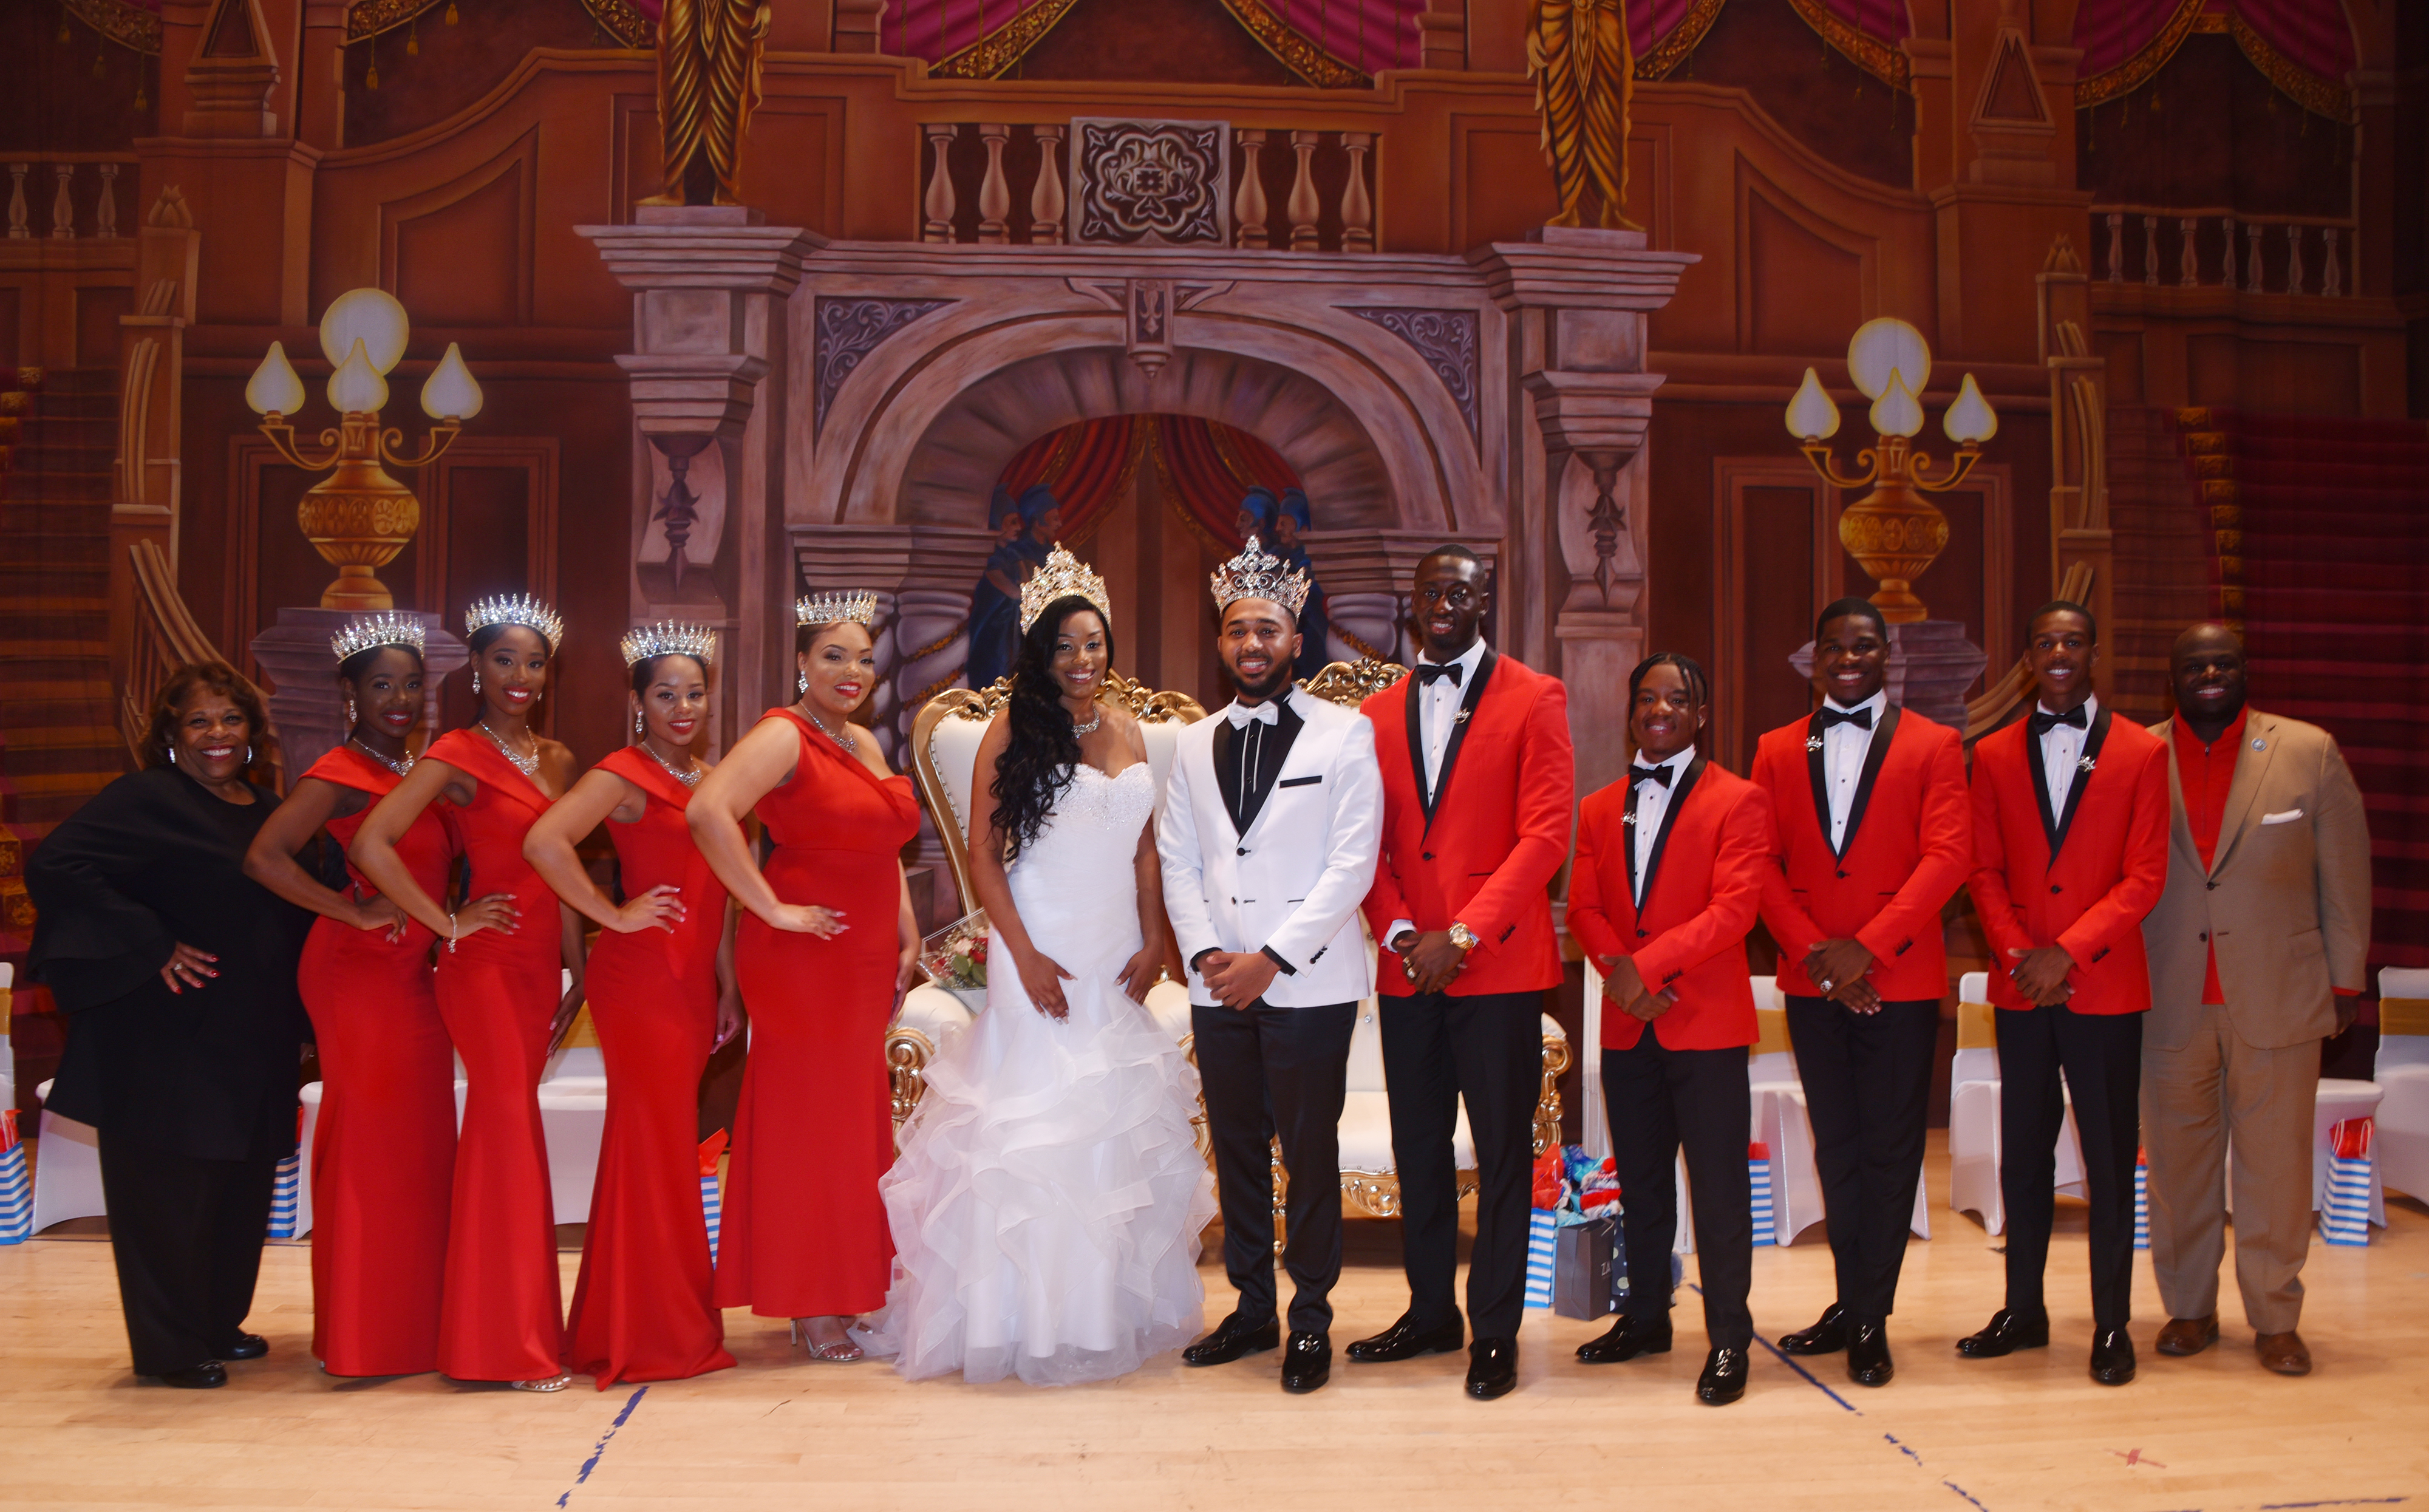 Miss and Mr. Delaware State University with their Royal Court and University President Wilma Mishoe and Provost Tony Allen